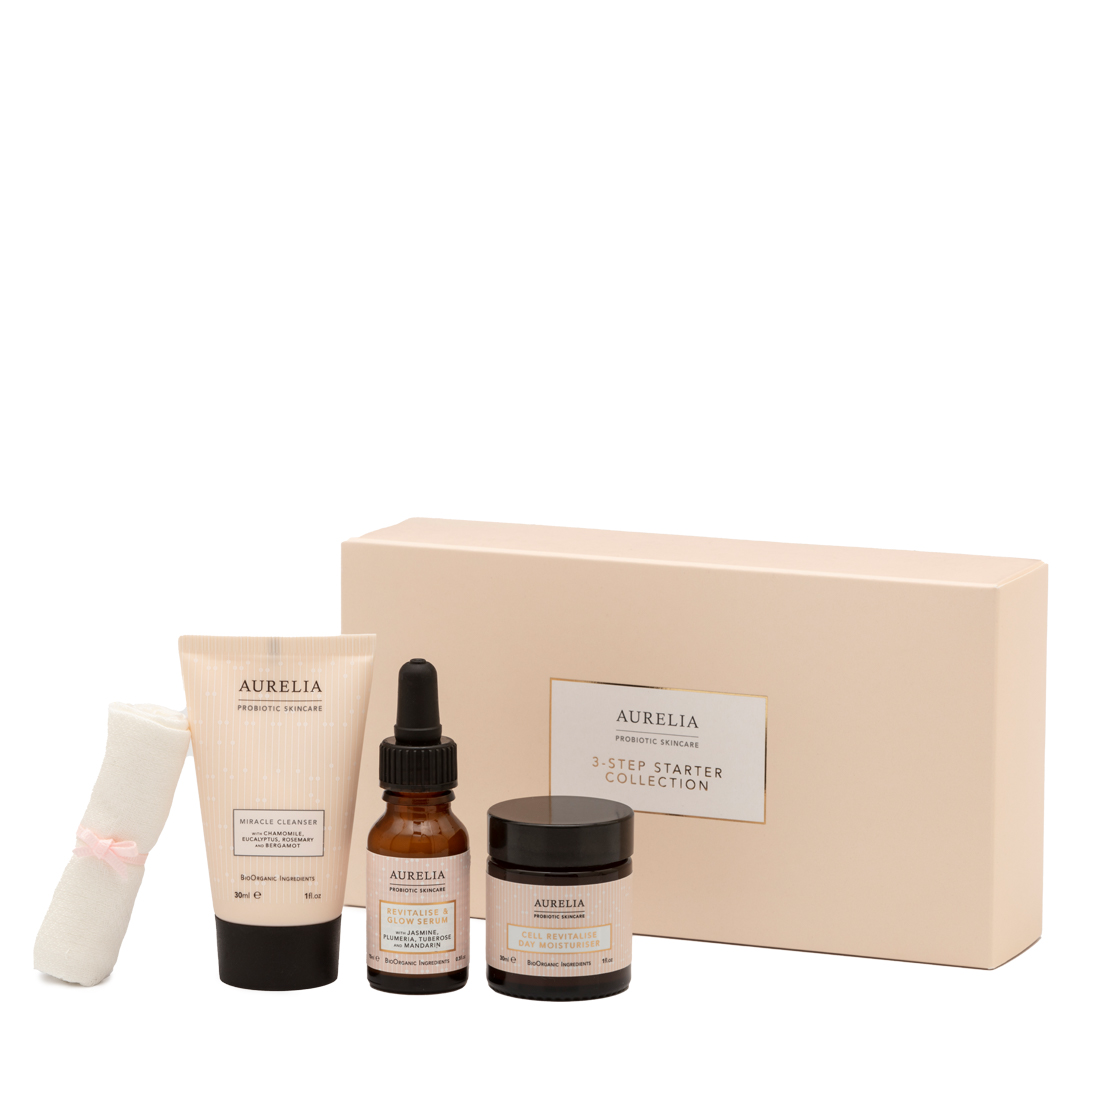 An image of 3 Step Starter Collection Aurelia London, 3 Step Probiotic Routine with Probioti...